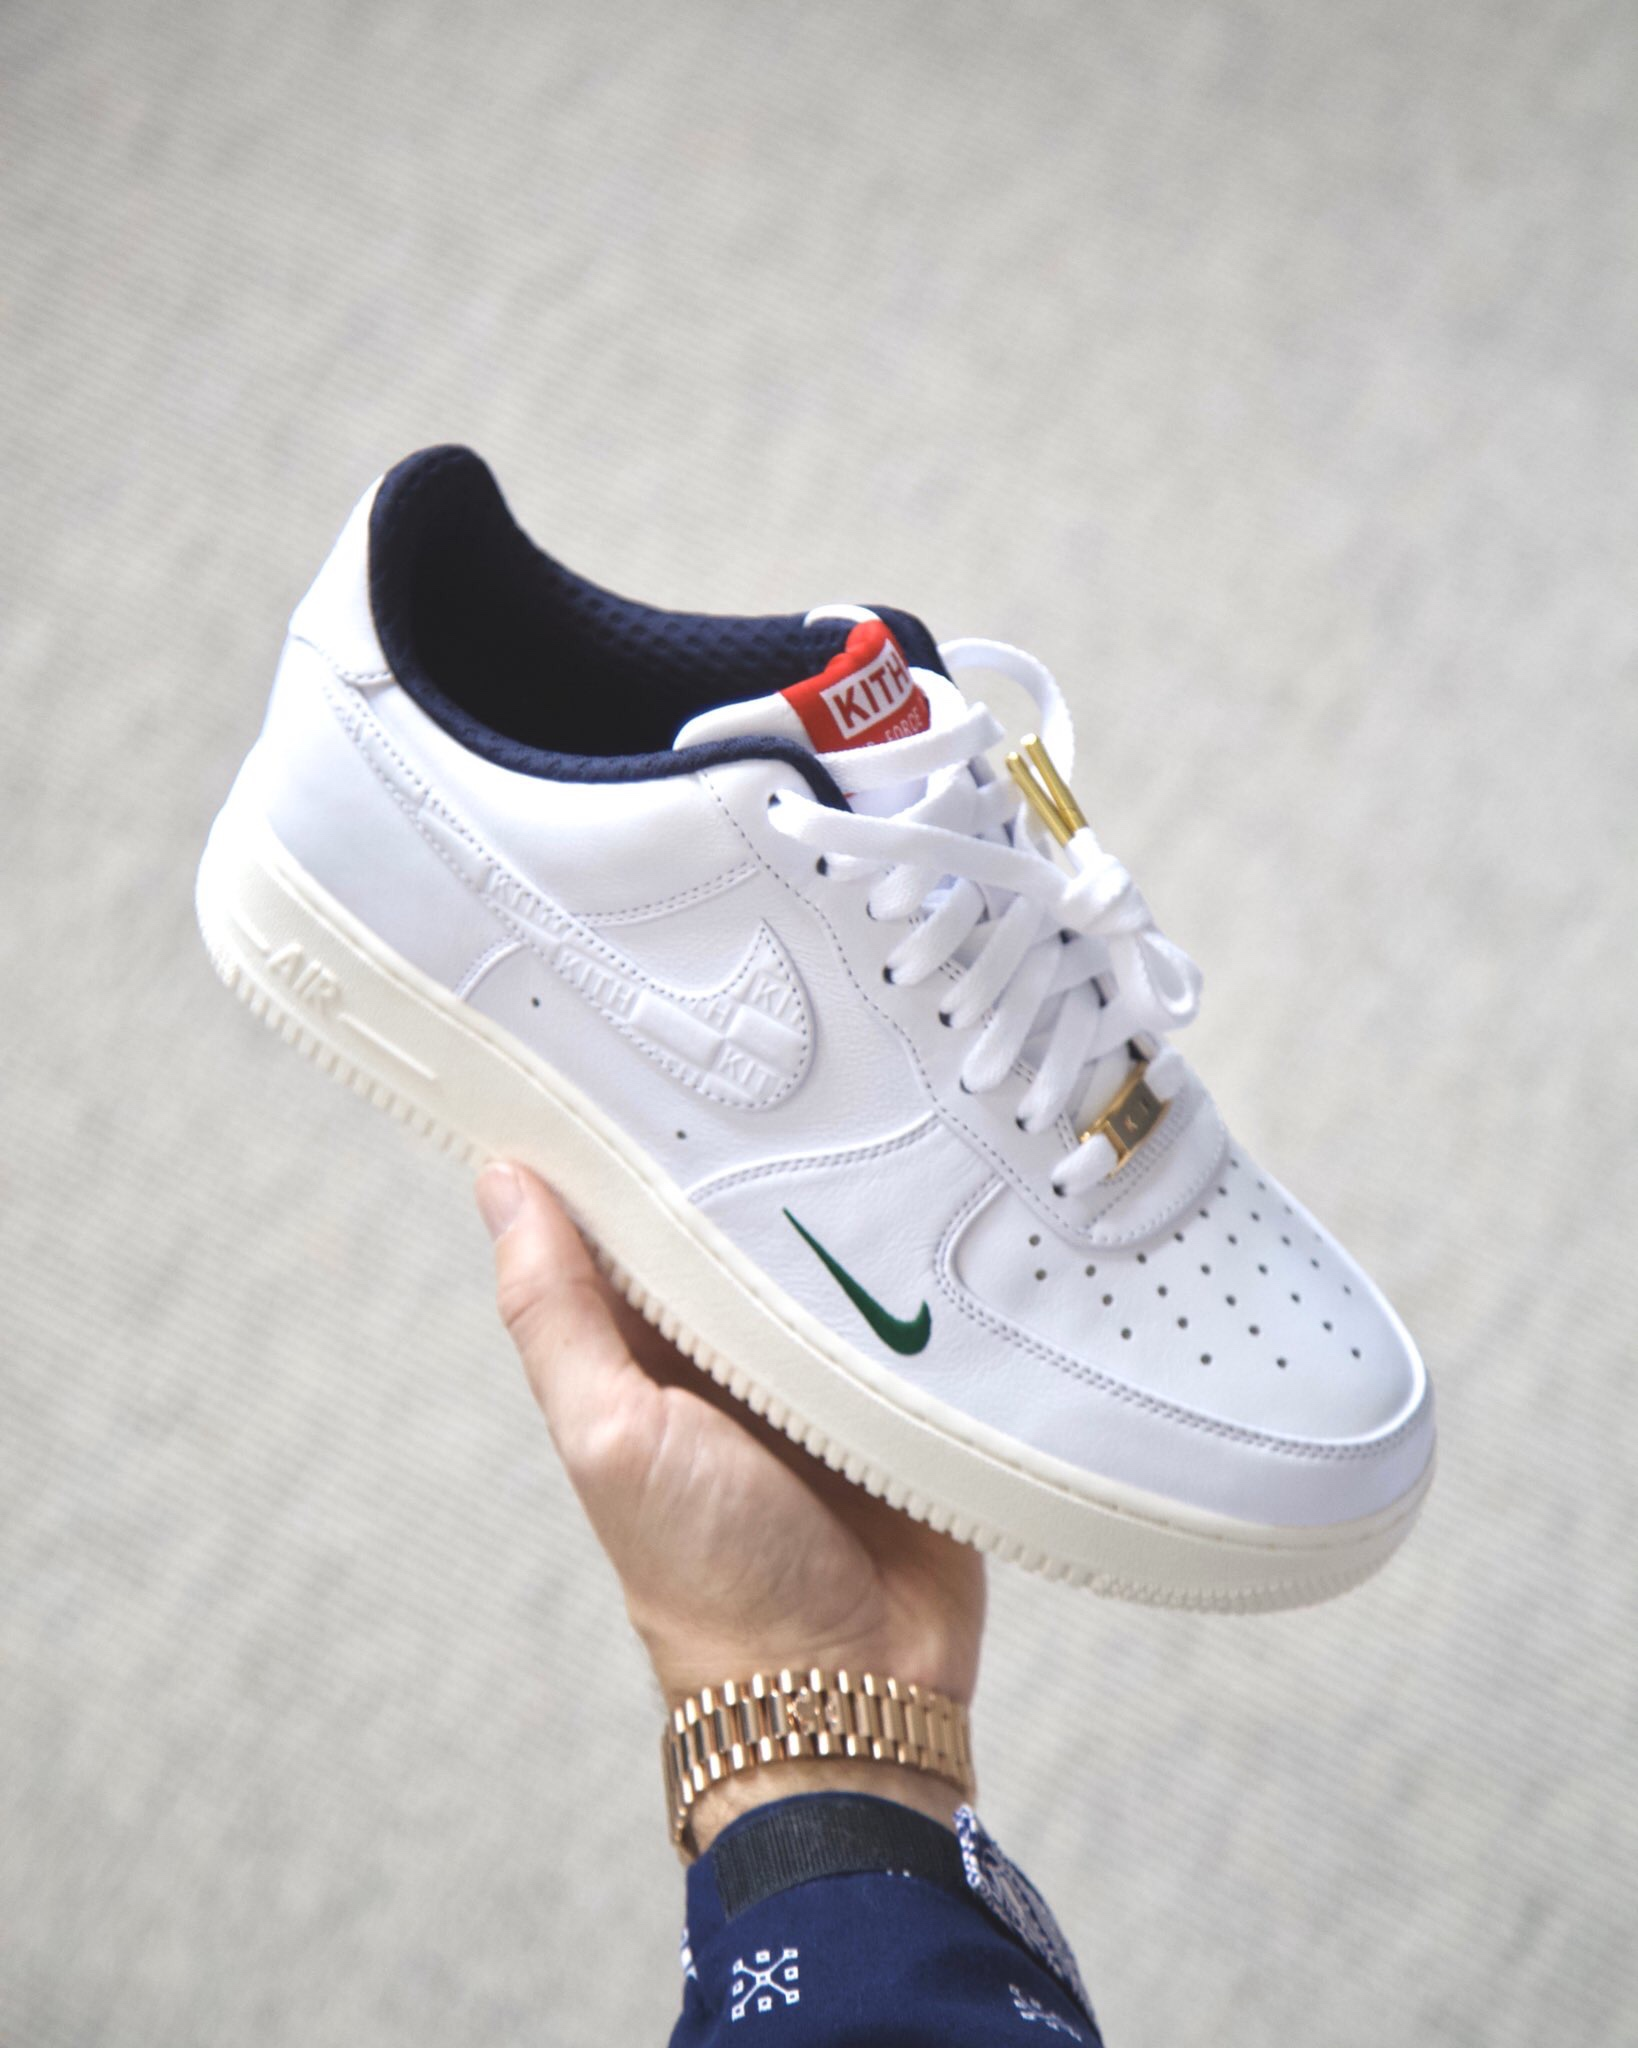 【KITH×NIKE】KITH × NIKE AIR FORCE 1 LOW